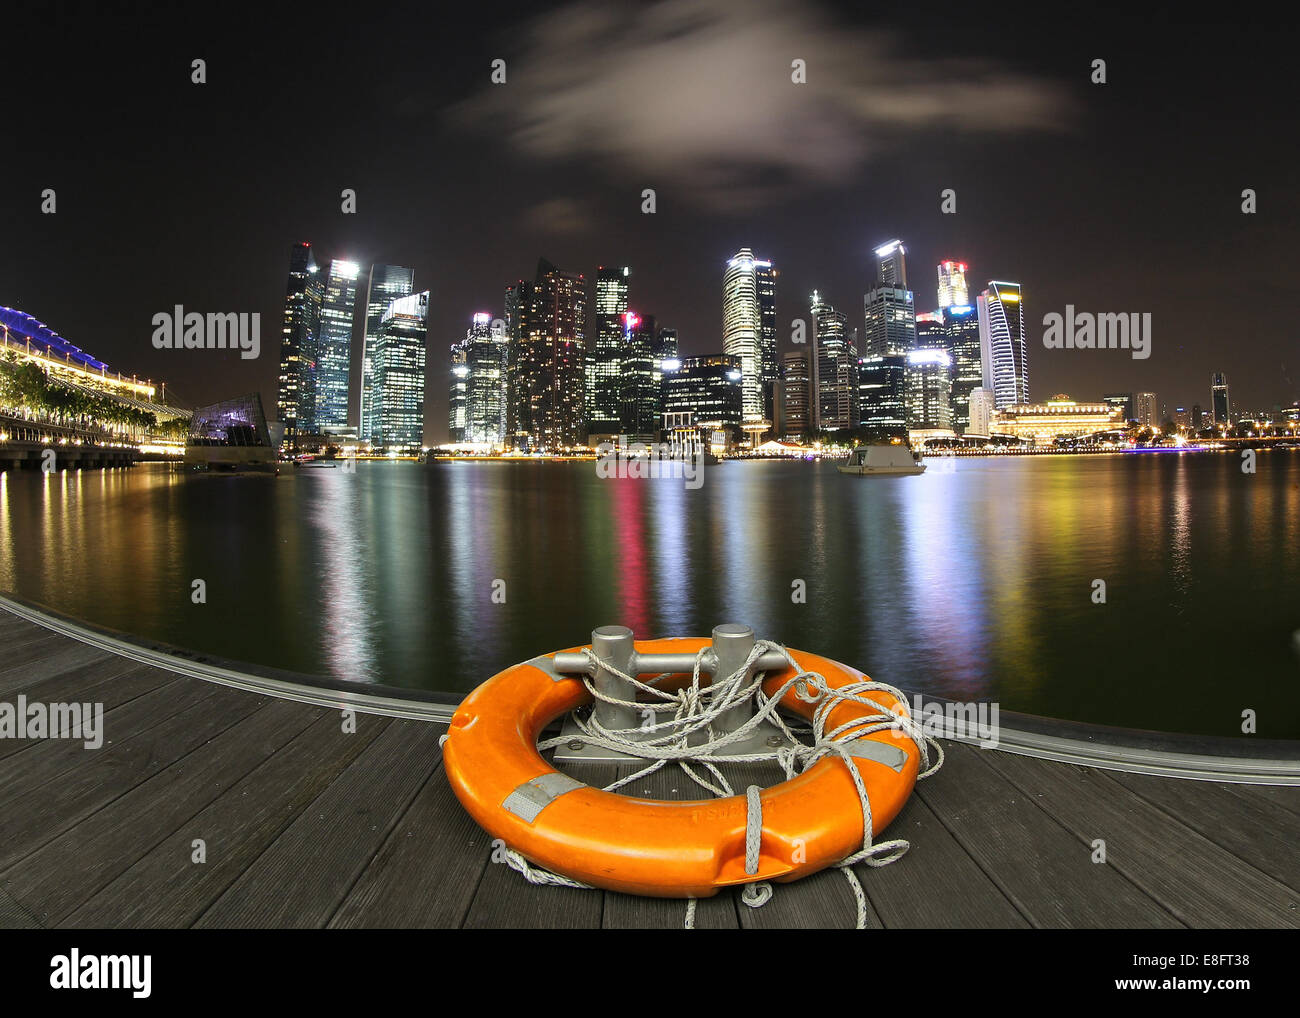 City skyline at night with lifebelt on dock, Marina Bay, Singapore - Stock Image